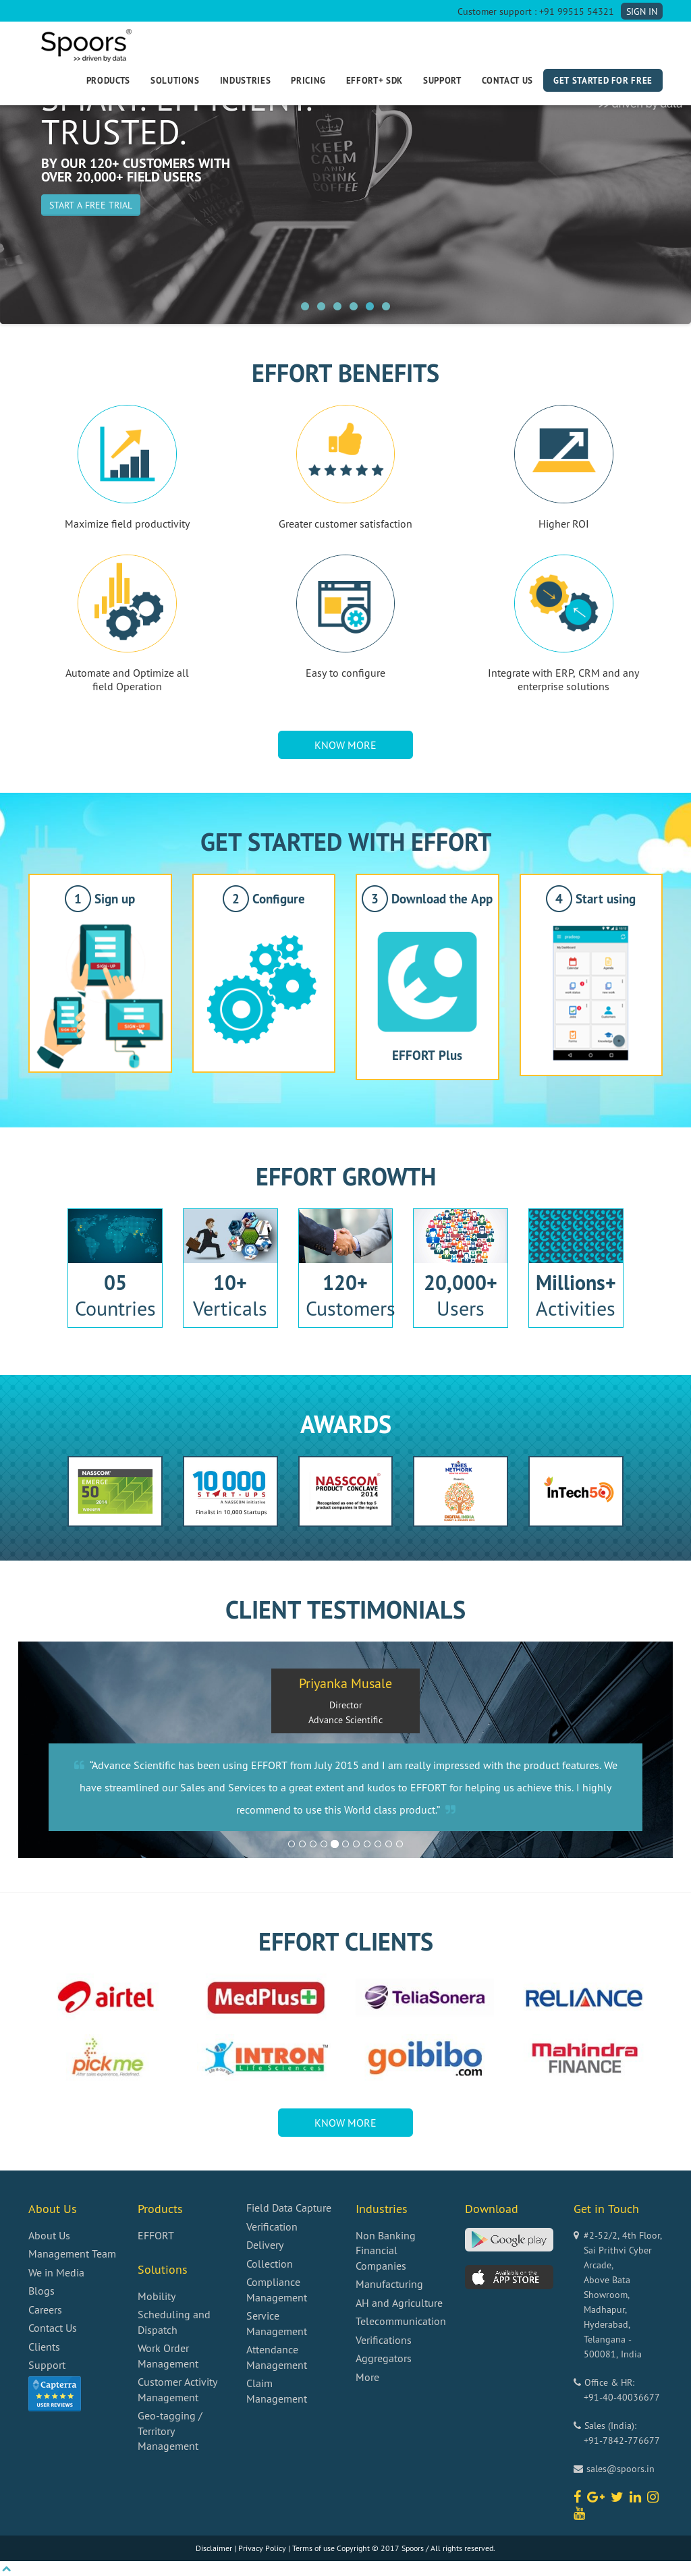 Spoors Technology Solutions Competitors, Revenue and